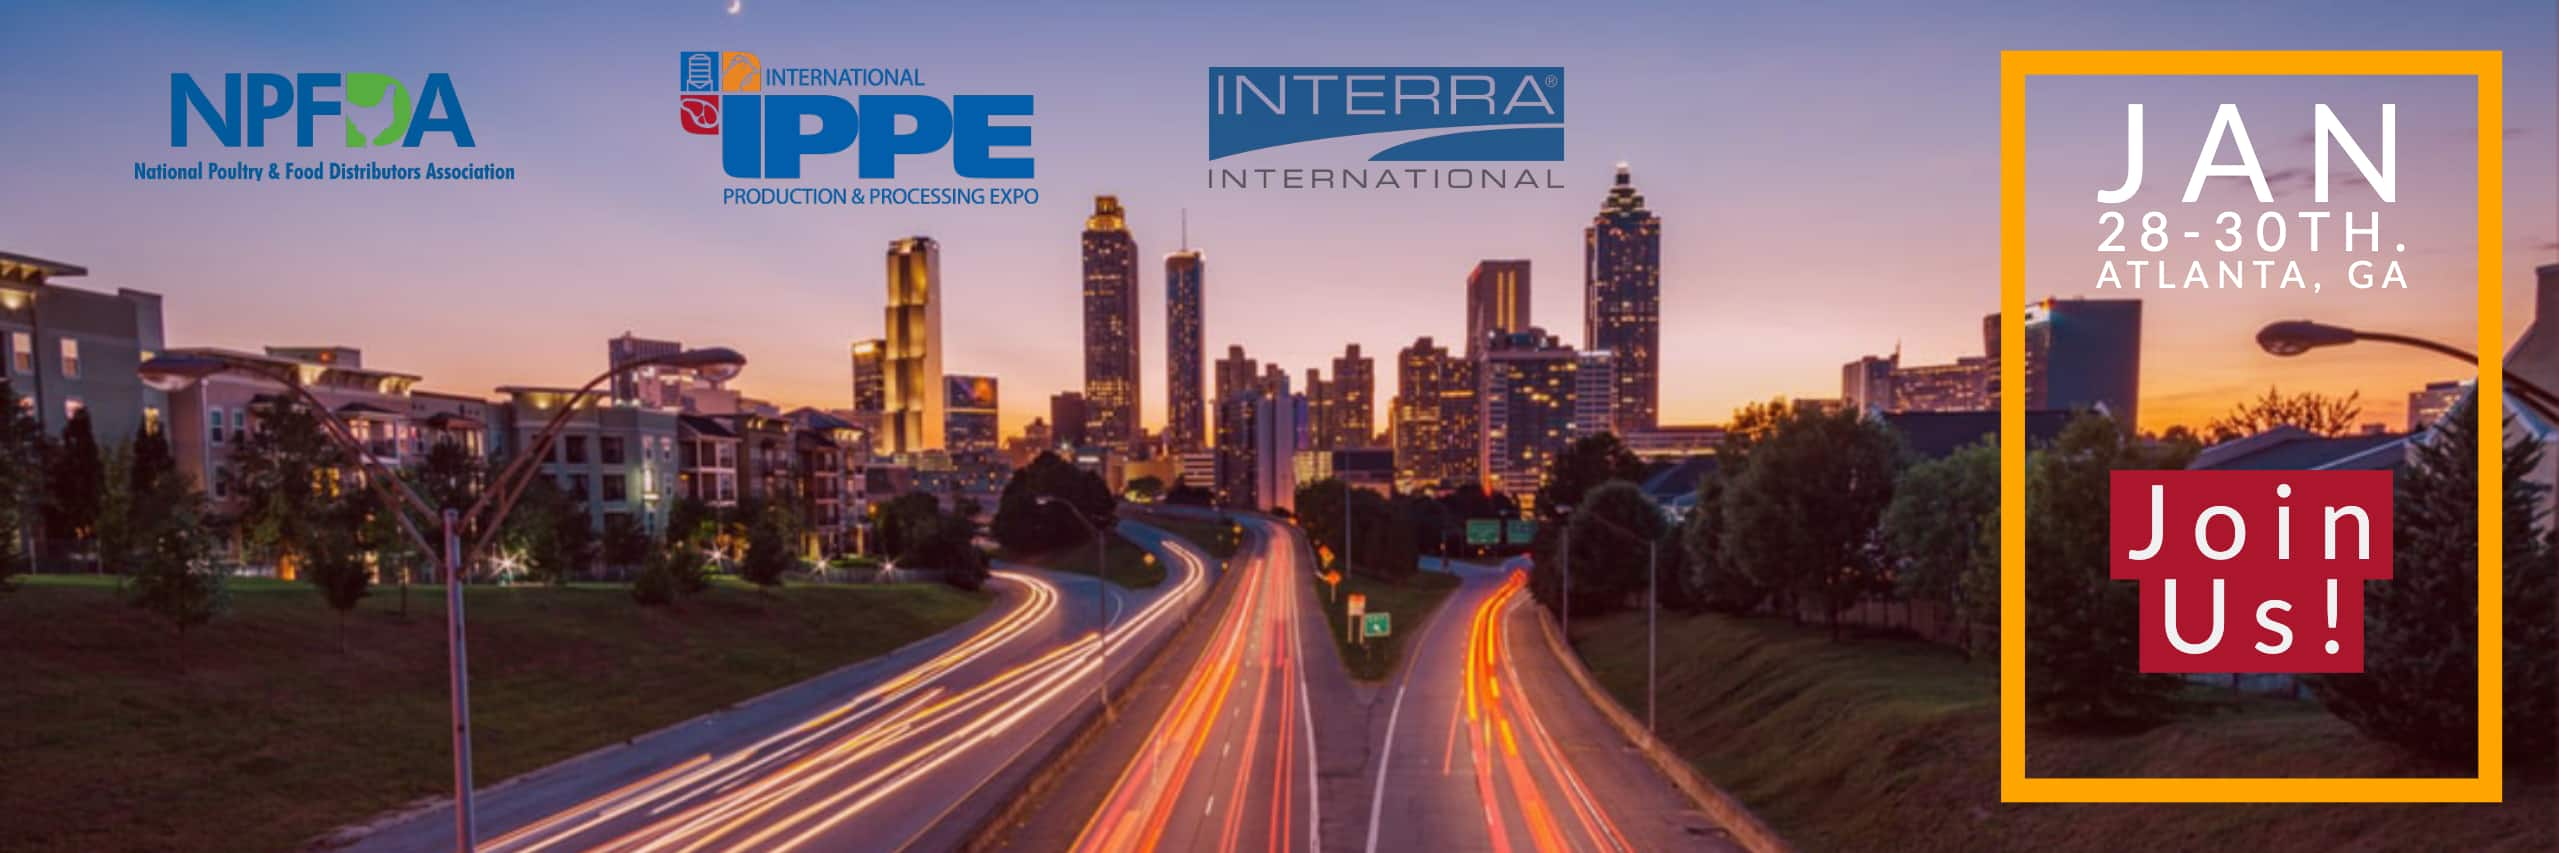 Interra at the IPPE 2020 and NPFDA